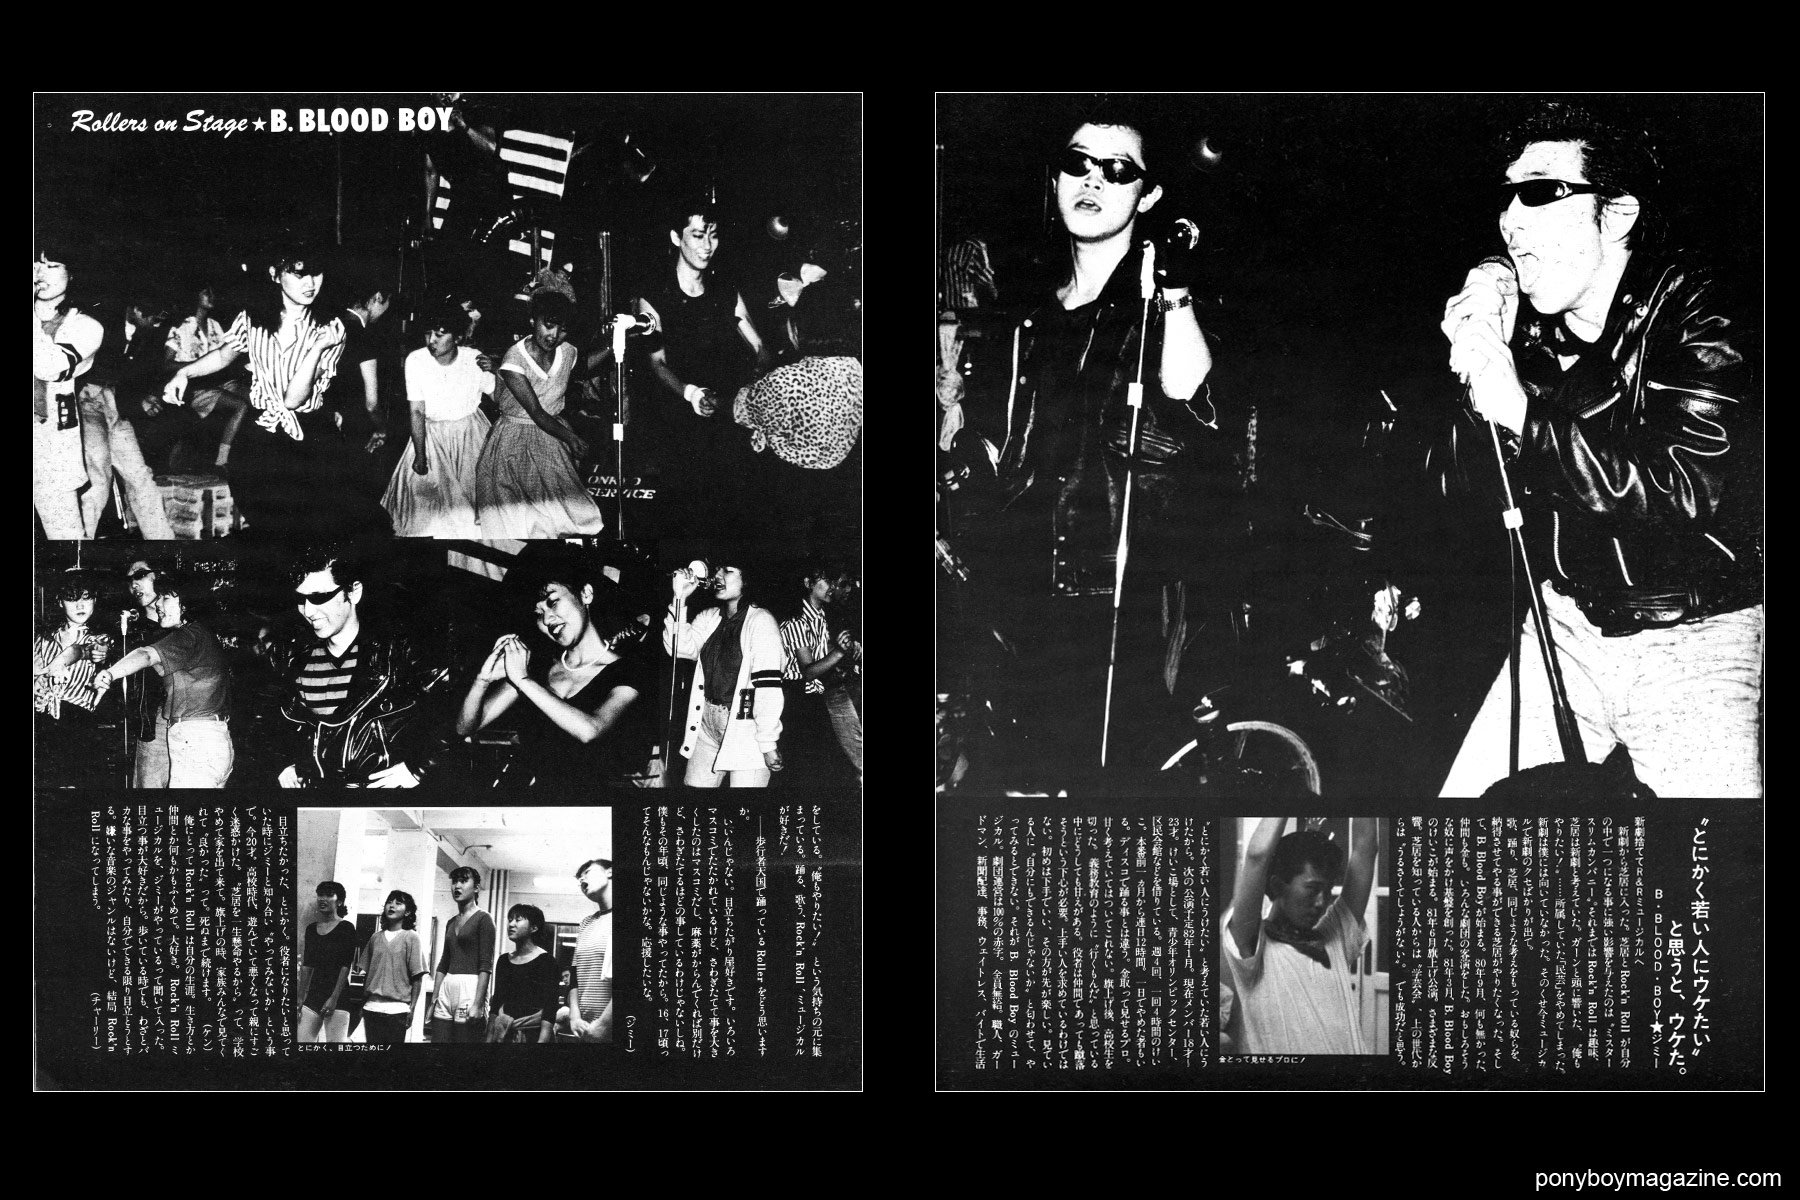 B&W photos from the 80's, of Japanese youth dressed in 50's fashions. From the book